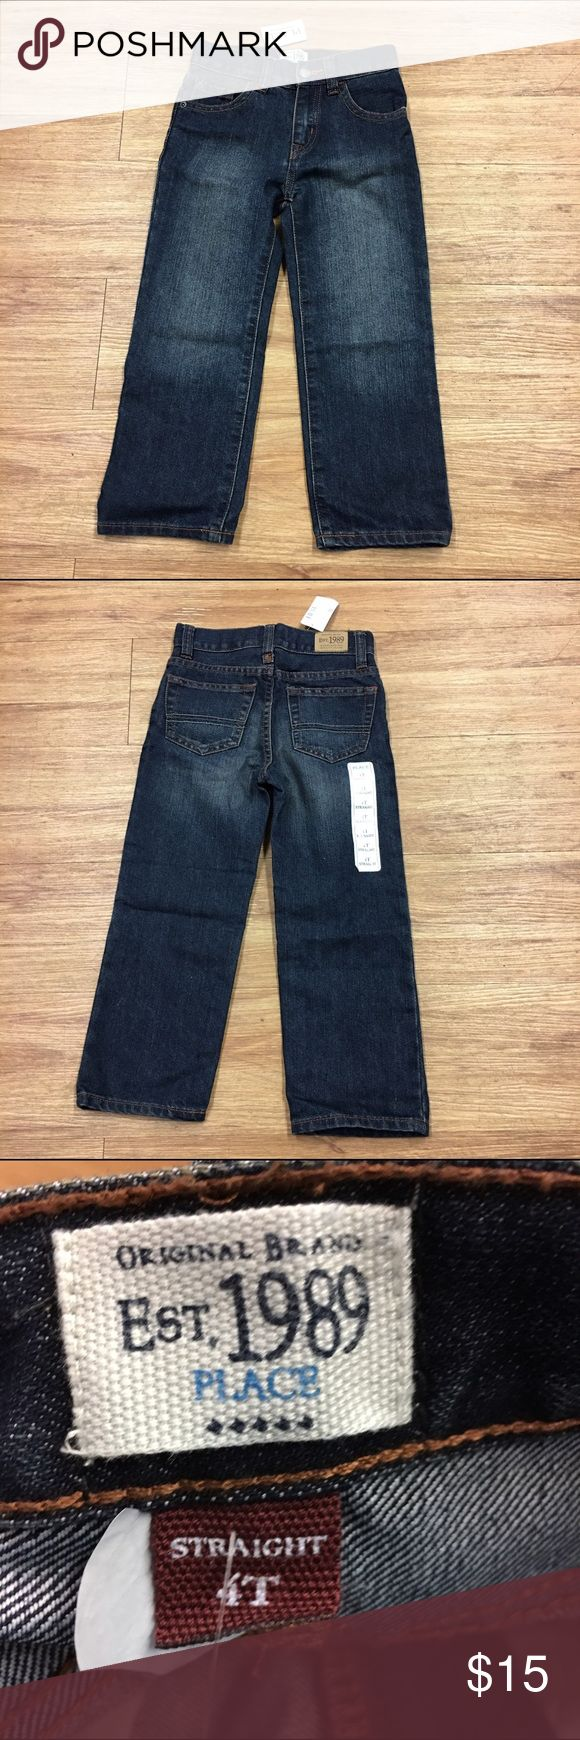 NEW NWT Children's Place Boys Straight Jeans 4T NEW NWT Children's Place Boys Straight Jeans 4T  Color: Iceberg Wash Style: Straight Size: 4T  5 pockets Belt Loops Adjustable Waist  #new #nwt #jeans #bluejeans #denim #straight #icebergwash #adjustablewaist #blue Children's Place Bottoms Jeans